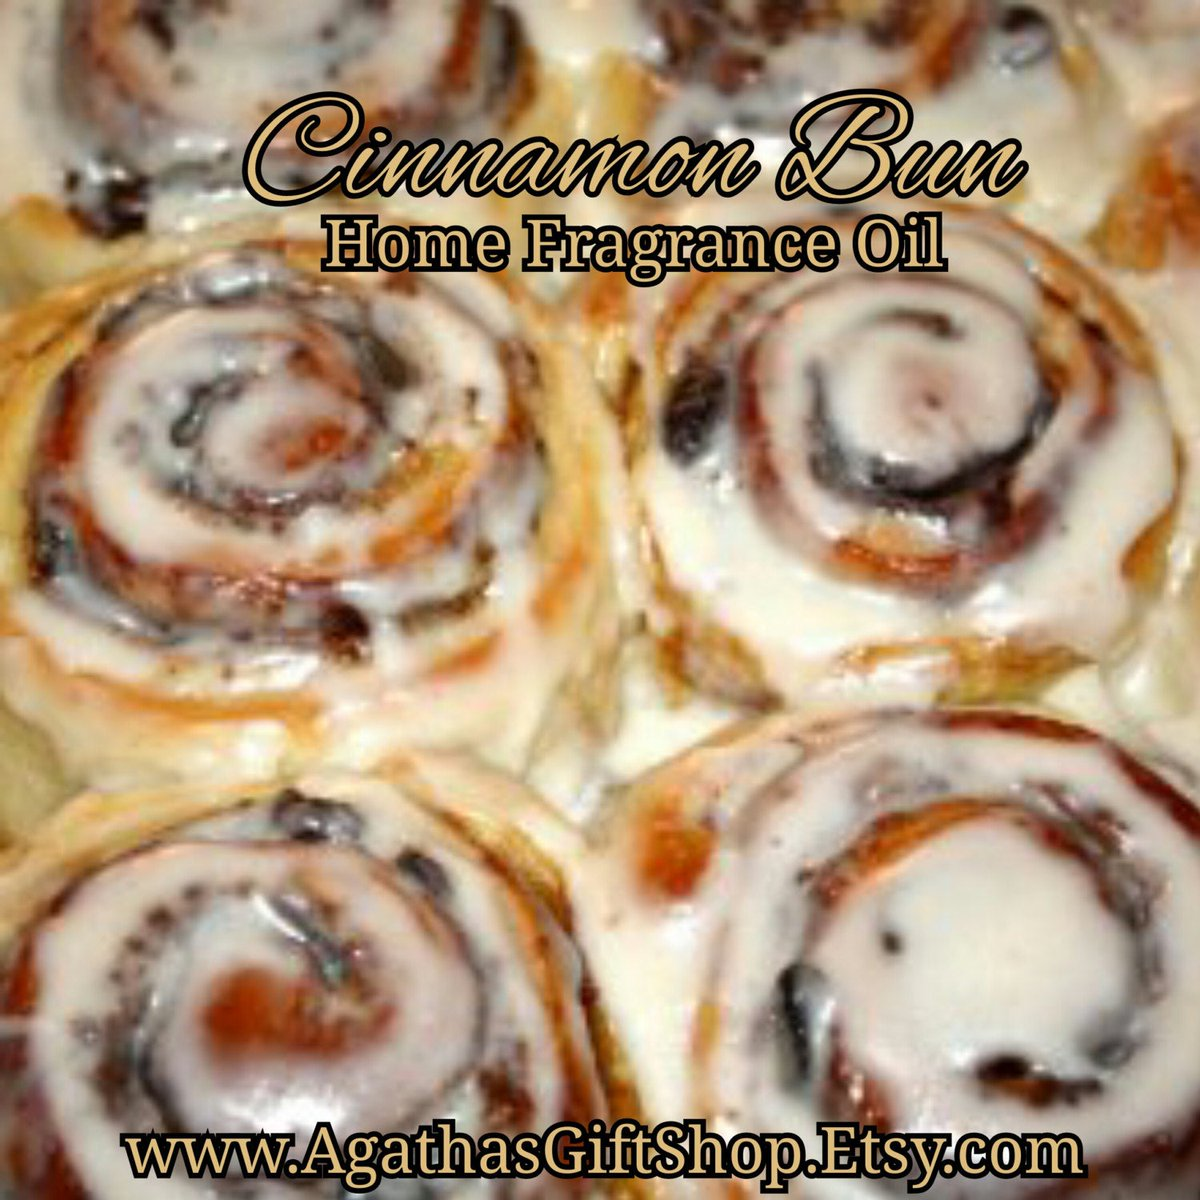 Cinnamon Bun Home Fragrance Diffuser Warmer Aromatherapy Burning Oil  #PerfumeBodyOils #Wedding #BlackFriday #Etsy #HomeFragranceOil #Incense #CyberMonday #GiftShopSale #AromatherapyOil #HerbalRemedies #HomeScentedOils